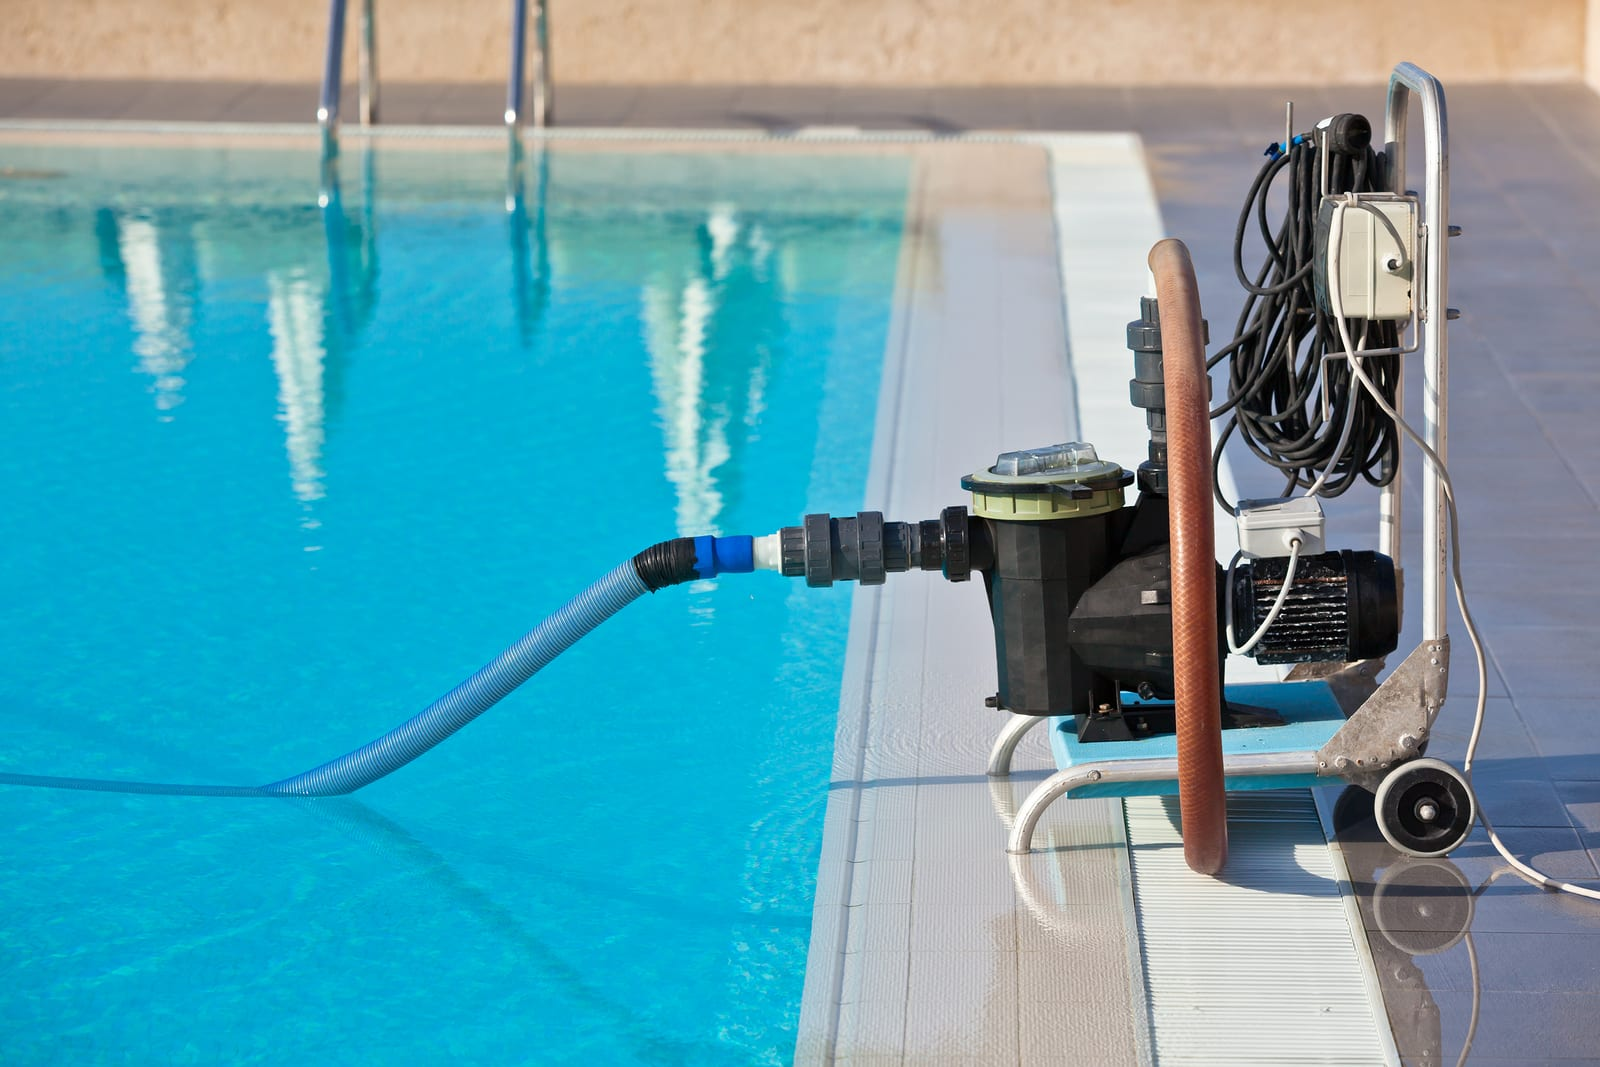 14 Best Pool Pumps for the Money in 2019 - In Swim